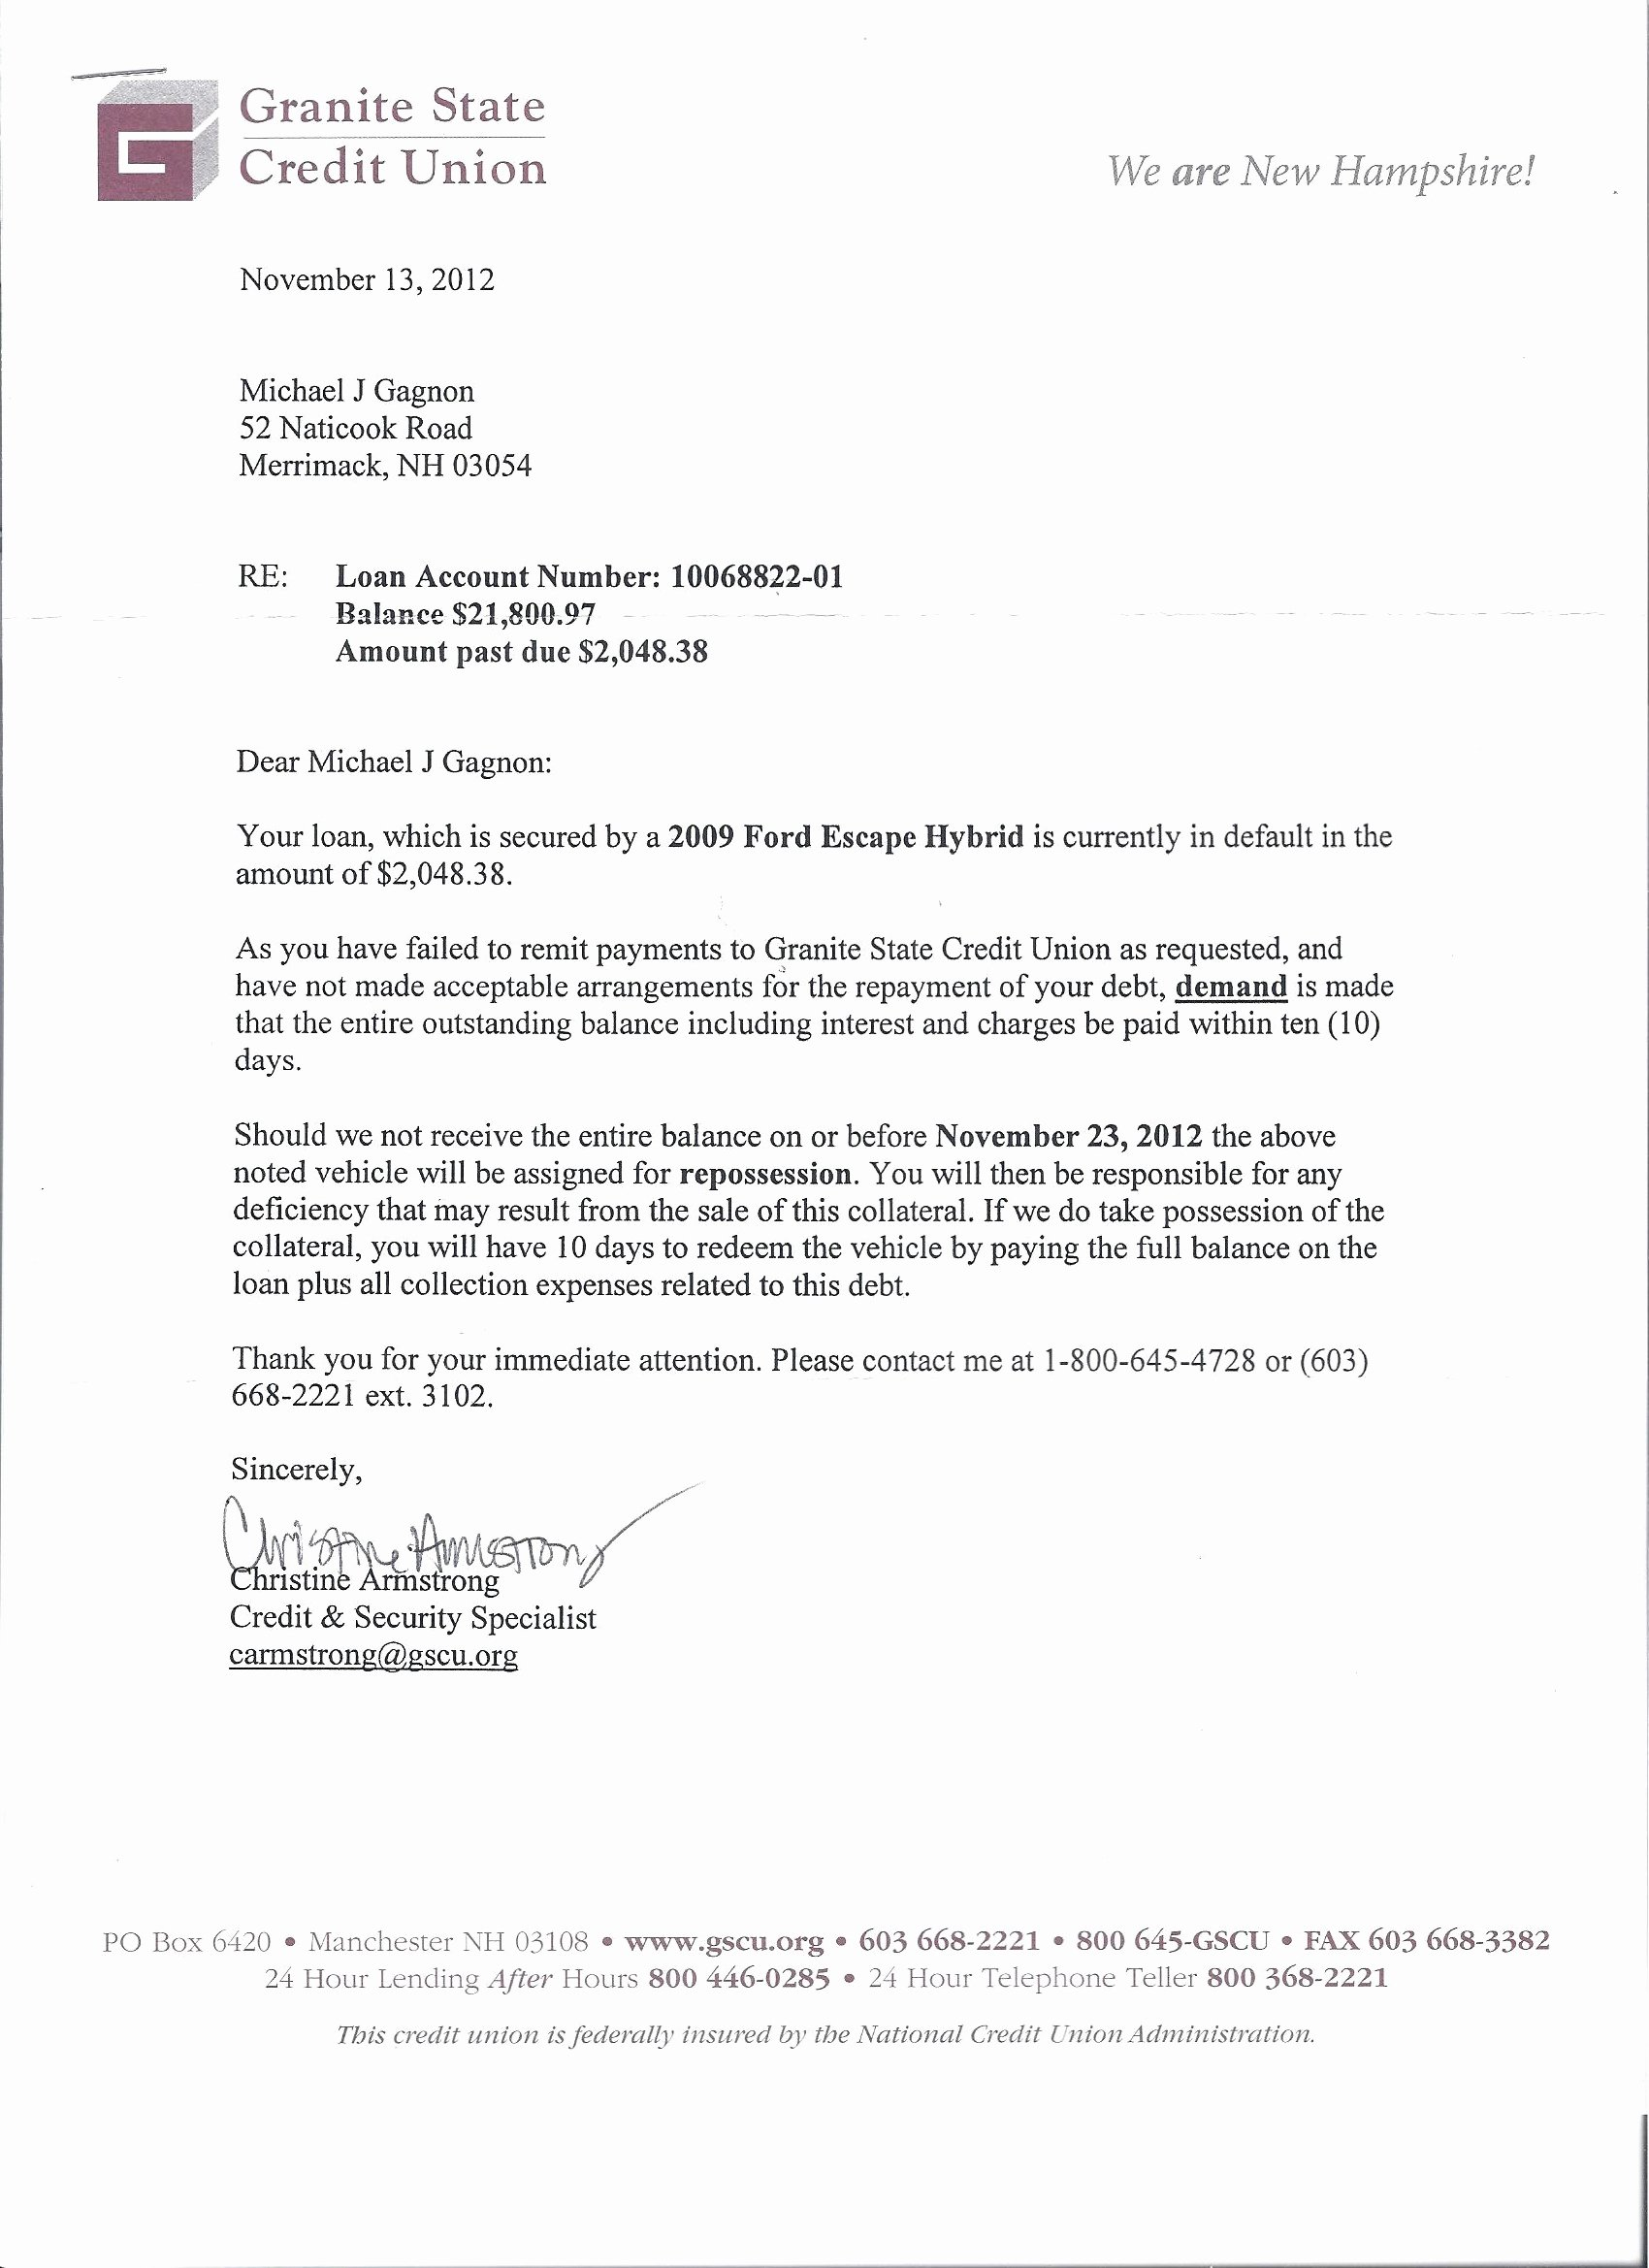 Notice Of Repossession Letter Template Luxury 12 10 12 Gscu Letter to Mr Michael J Gagnon 001